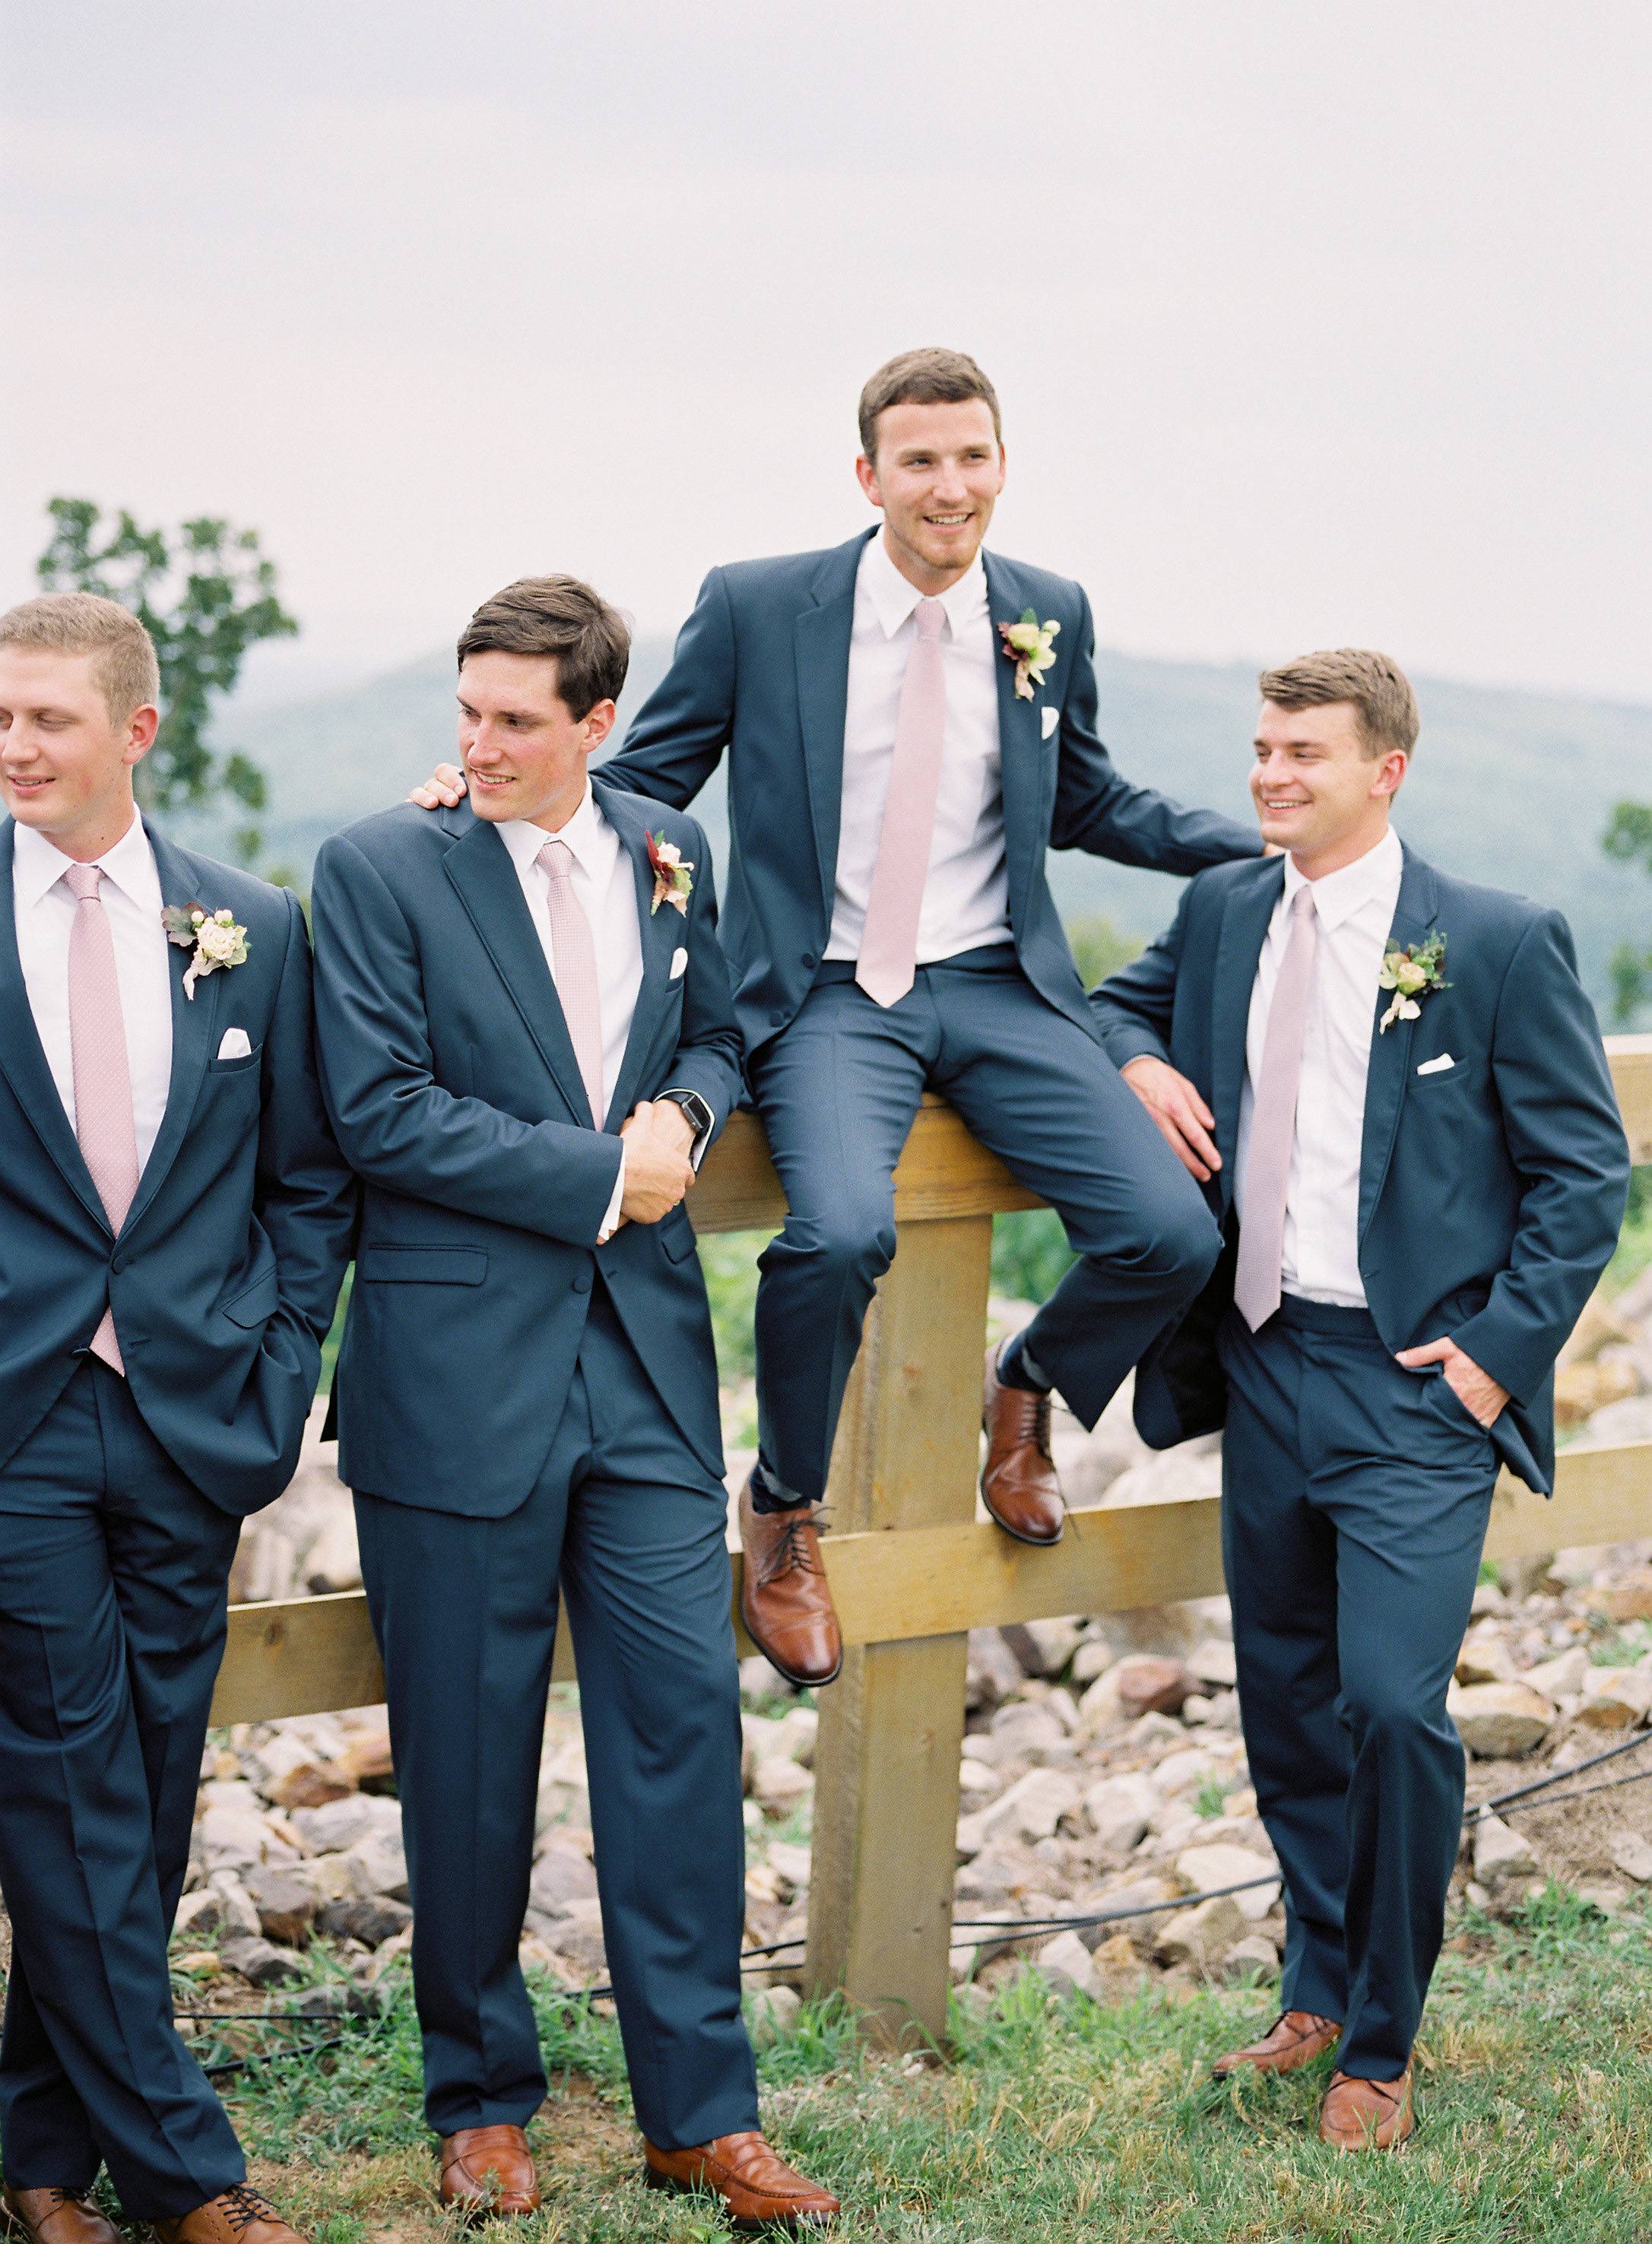 Five Things a Groomsman Should Never Do on the Wedding Day